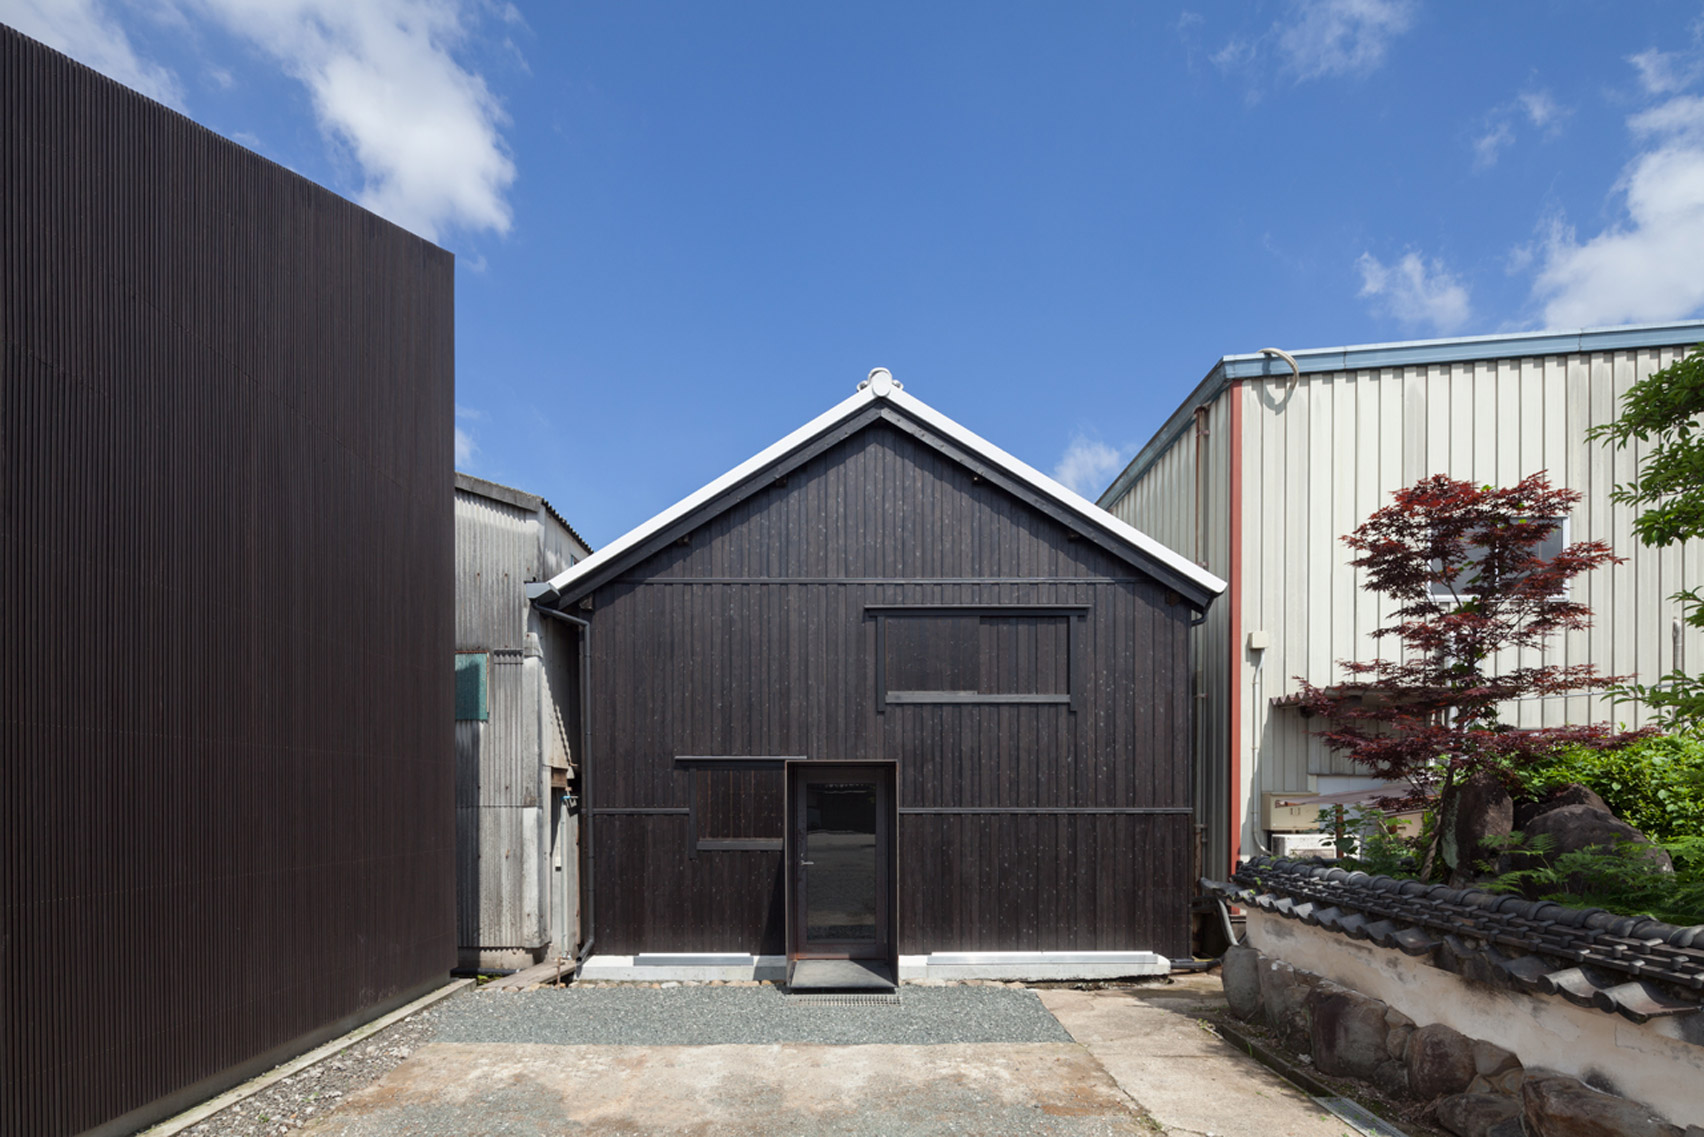 yHa architects converts Japanese sake brewery building into tasting and exhibition space